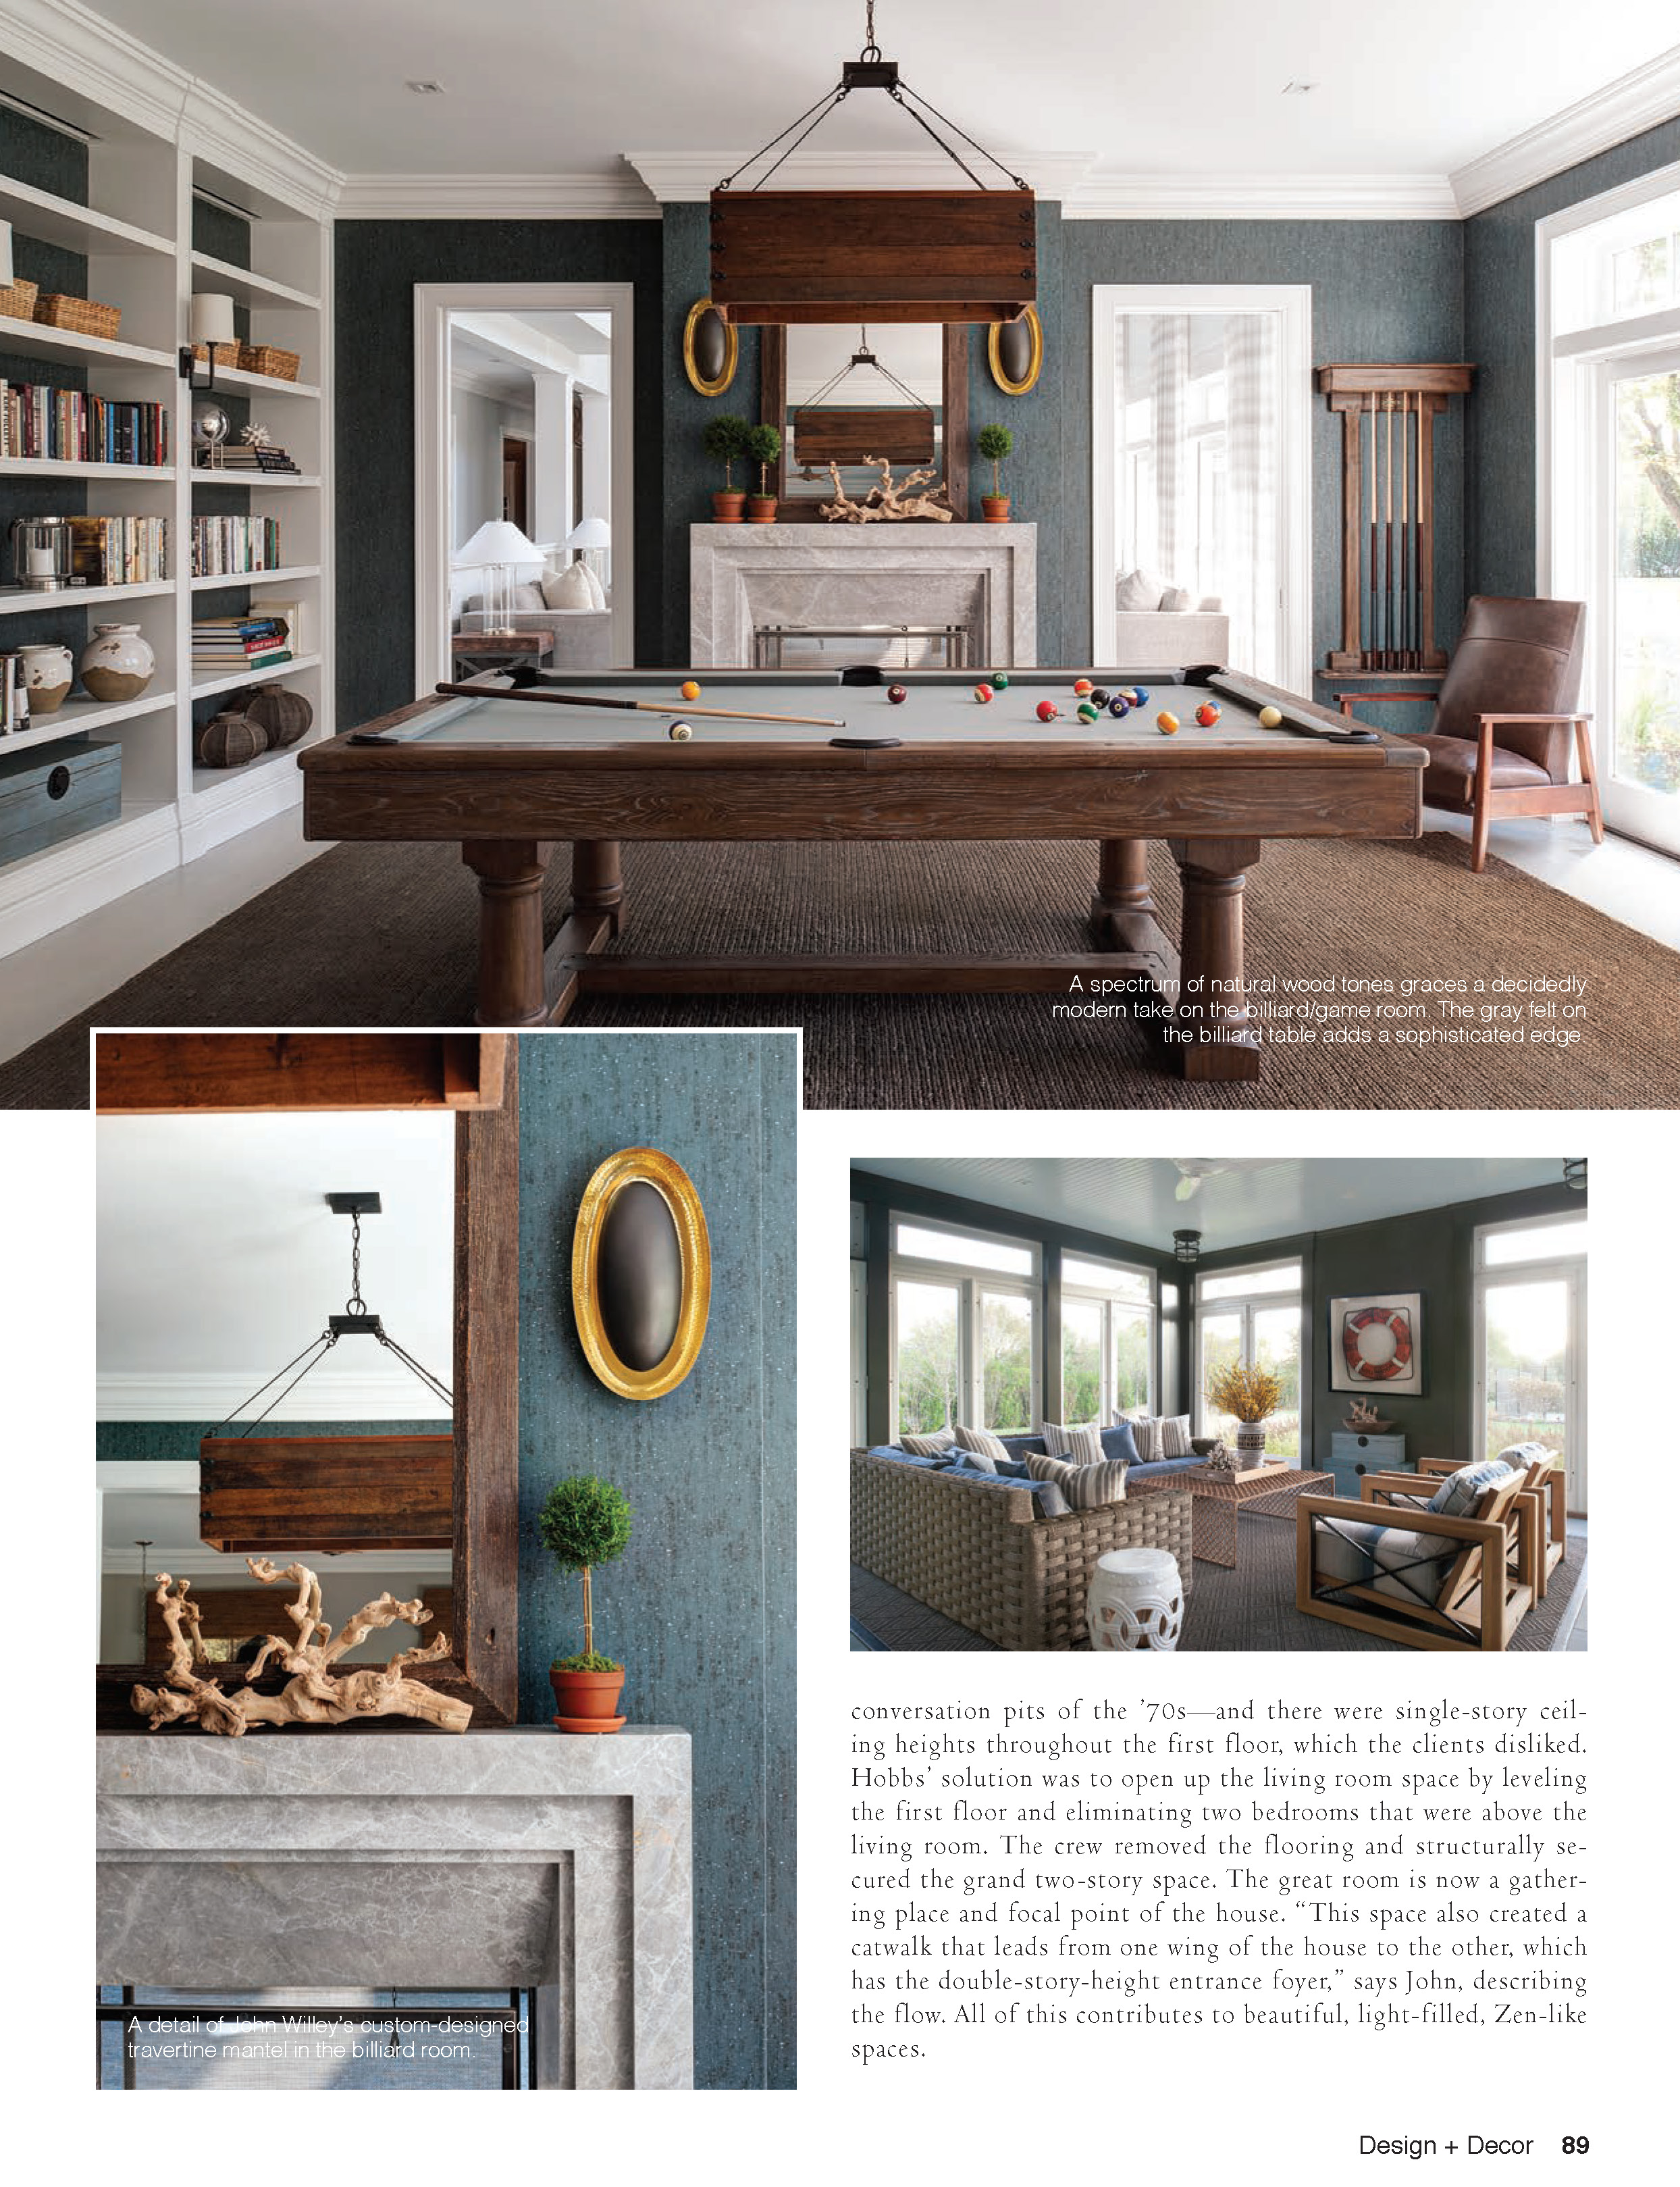 Design + Decor Spring 2019 - Cover & Article_Page_09.jpg